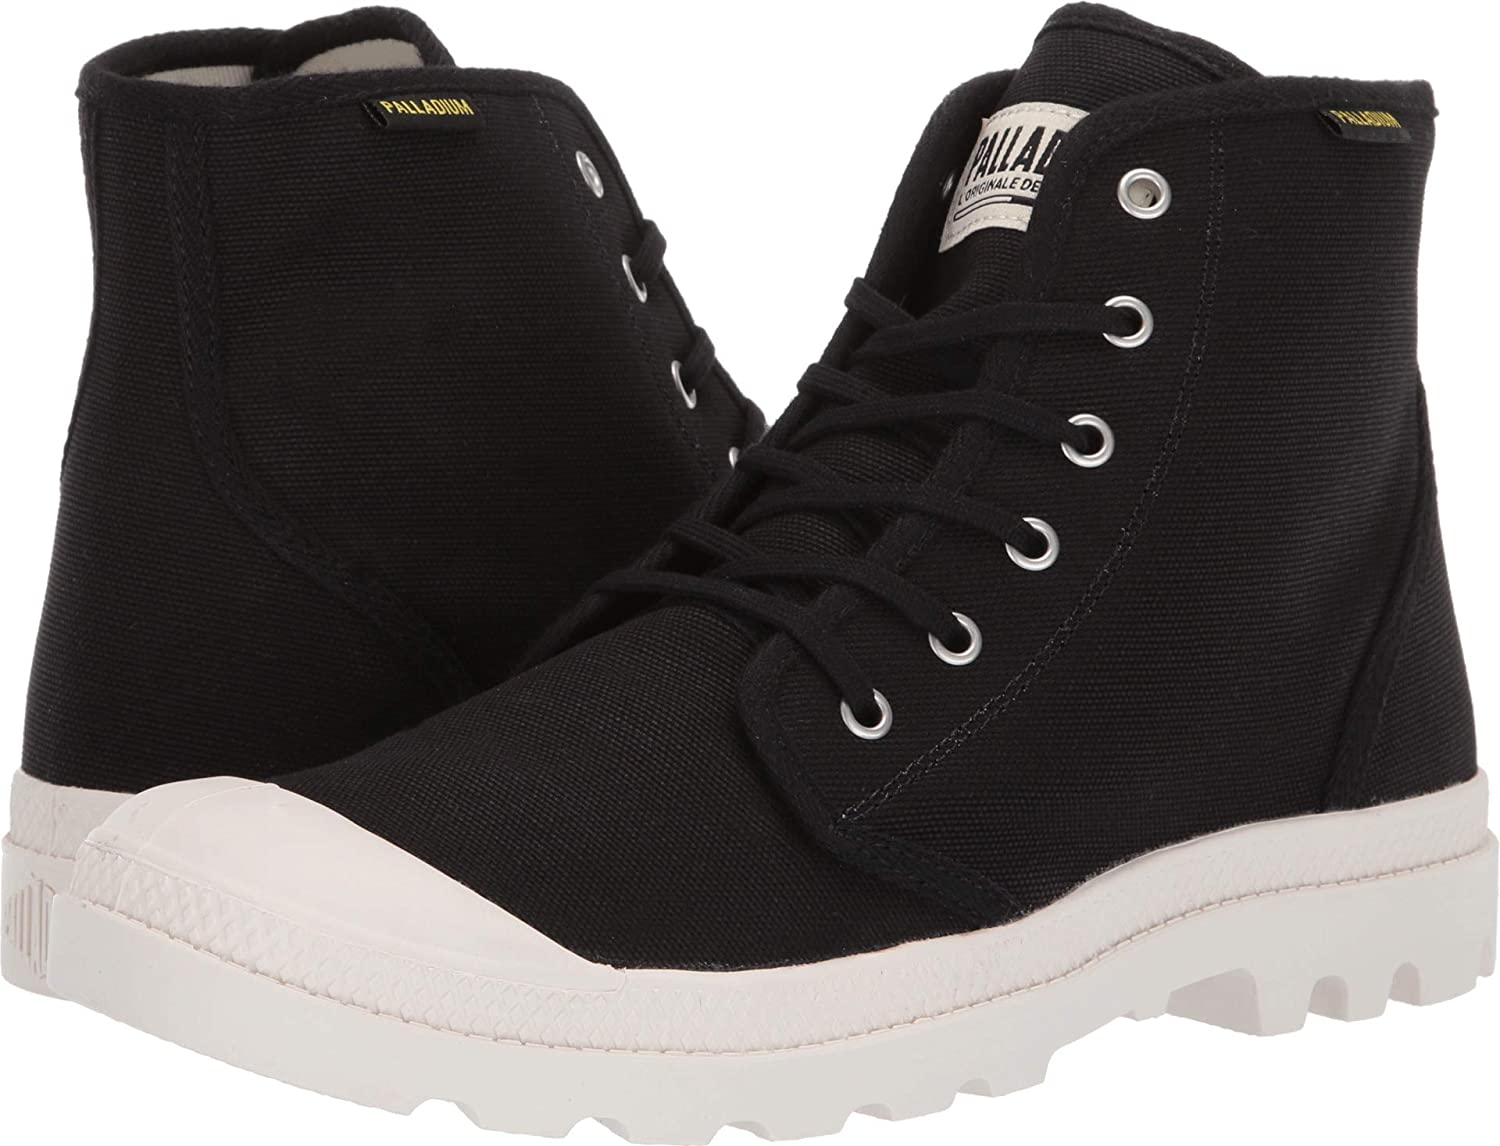 Black Marshmallow Palladium Men's Pampa Hi Originale Chukka